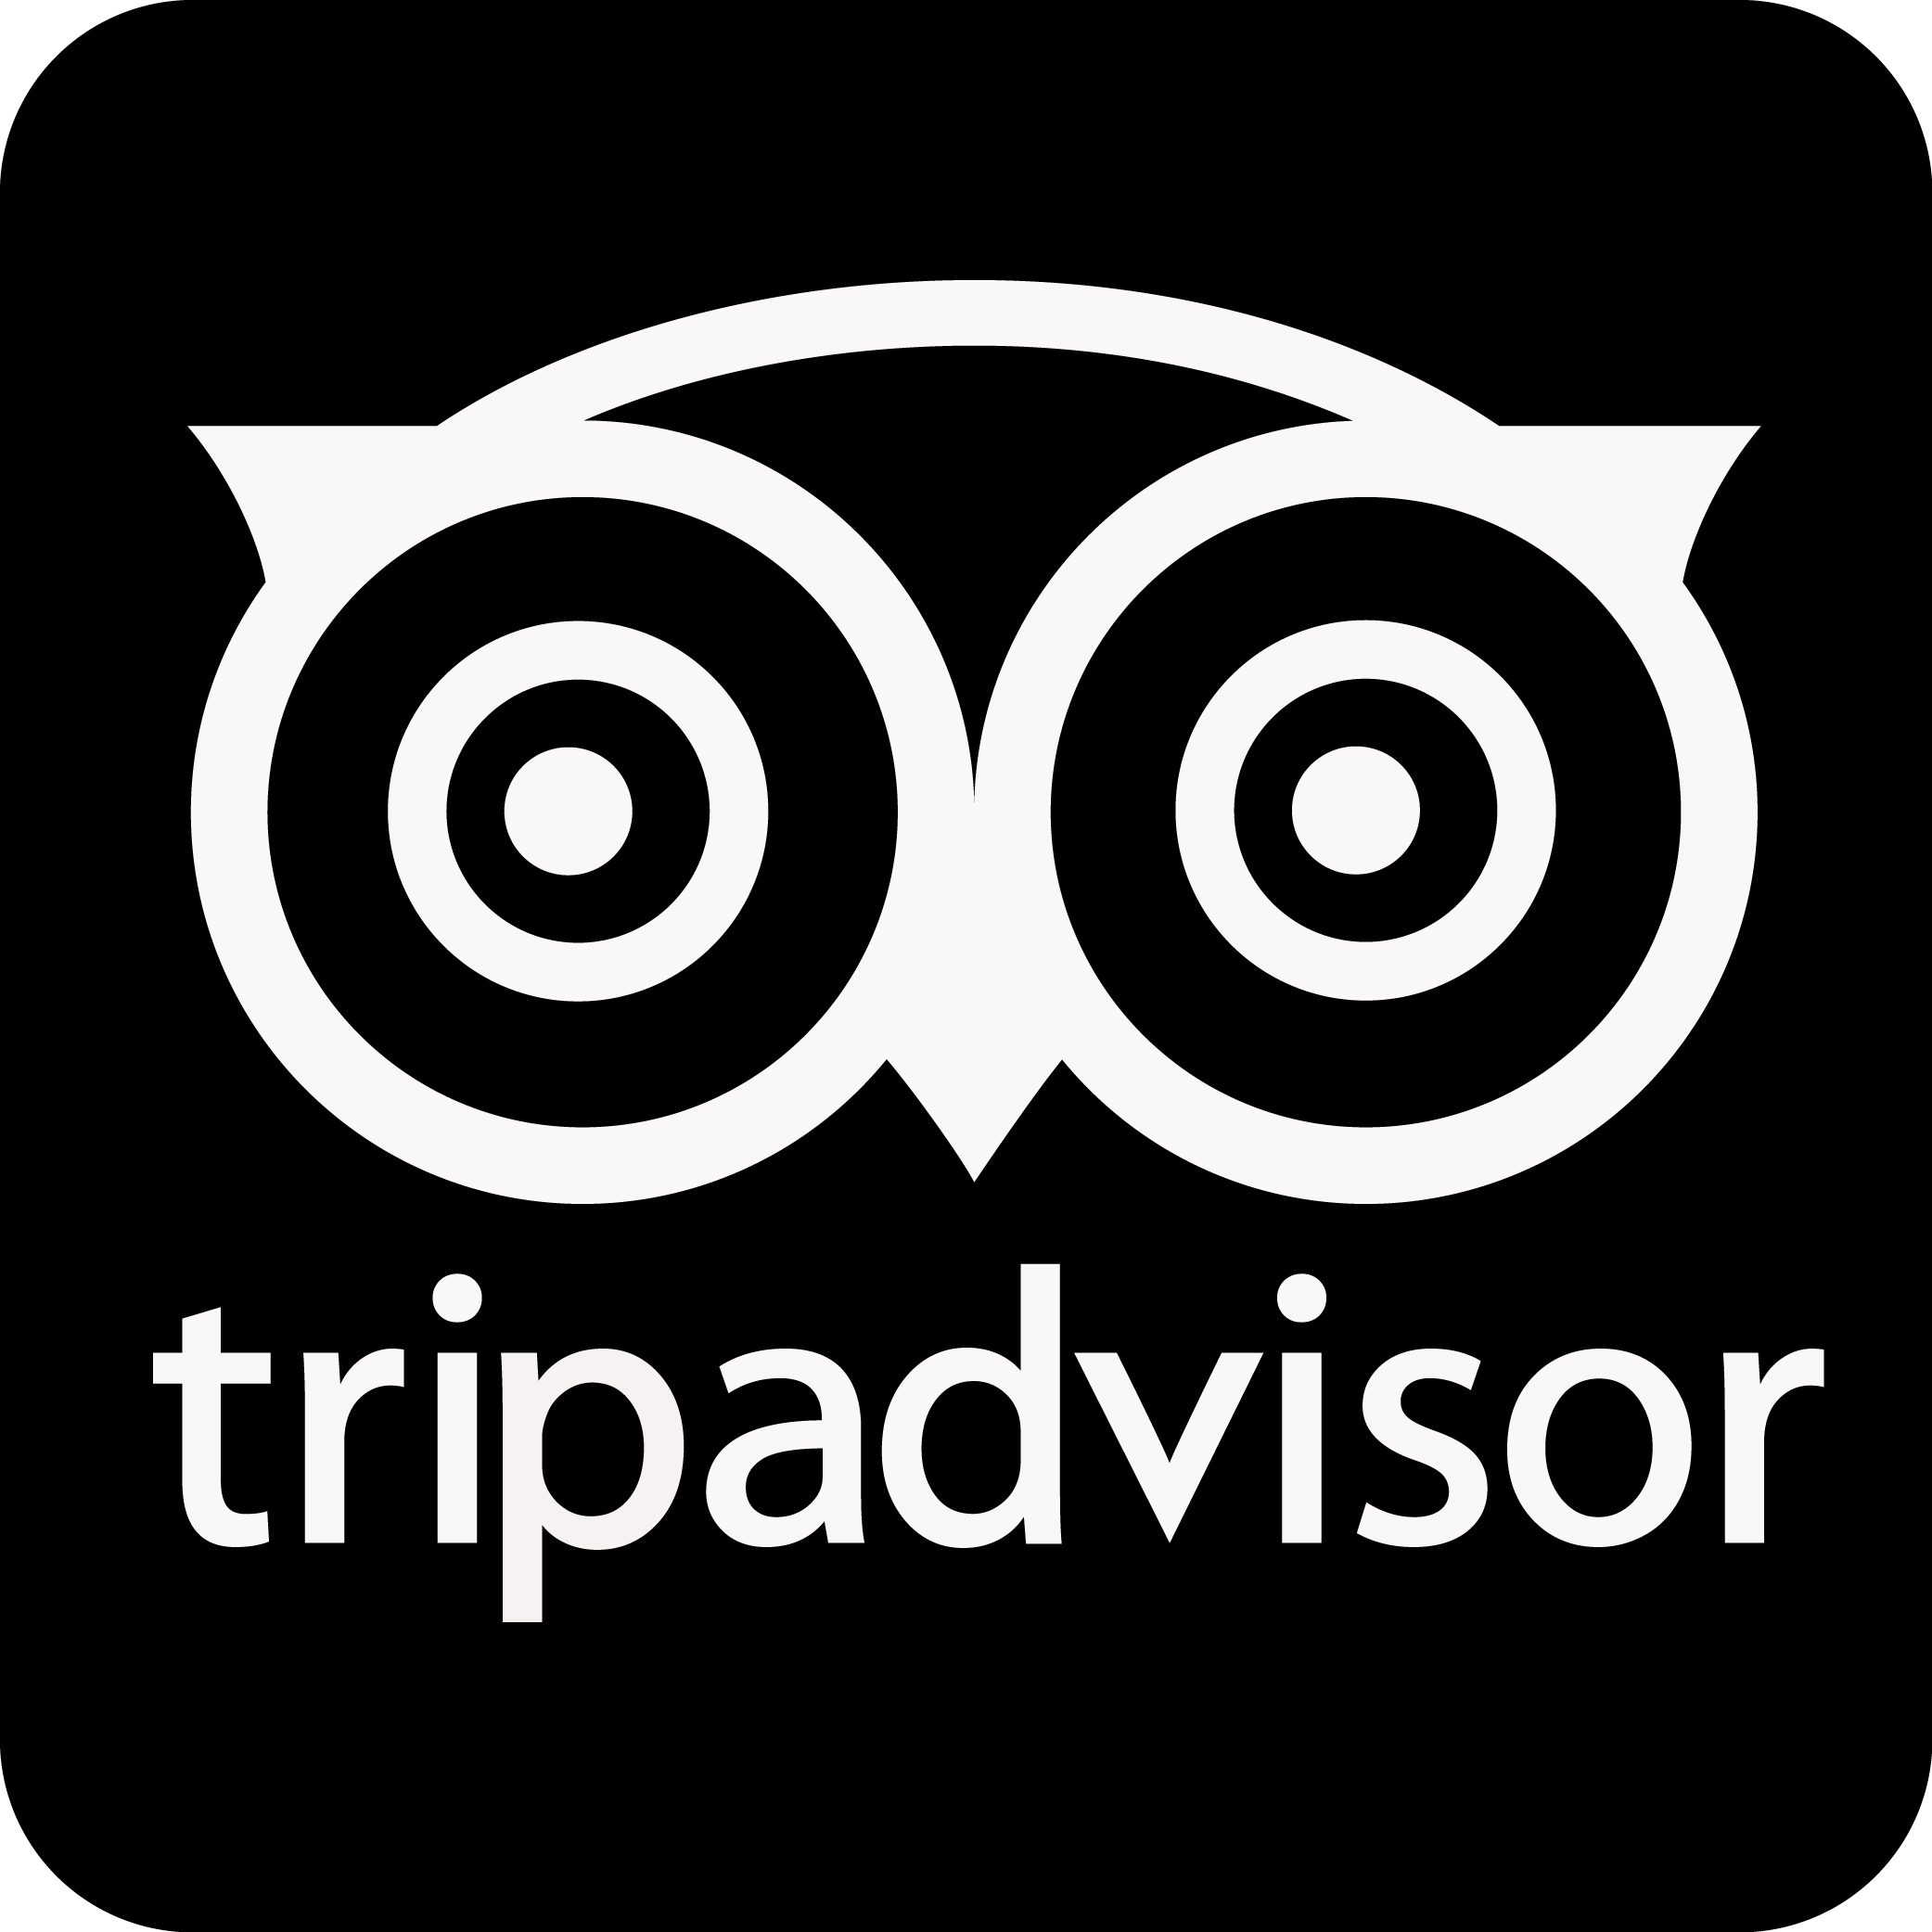 Visit our page on Trip Advisor